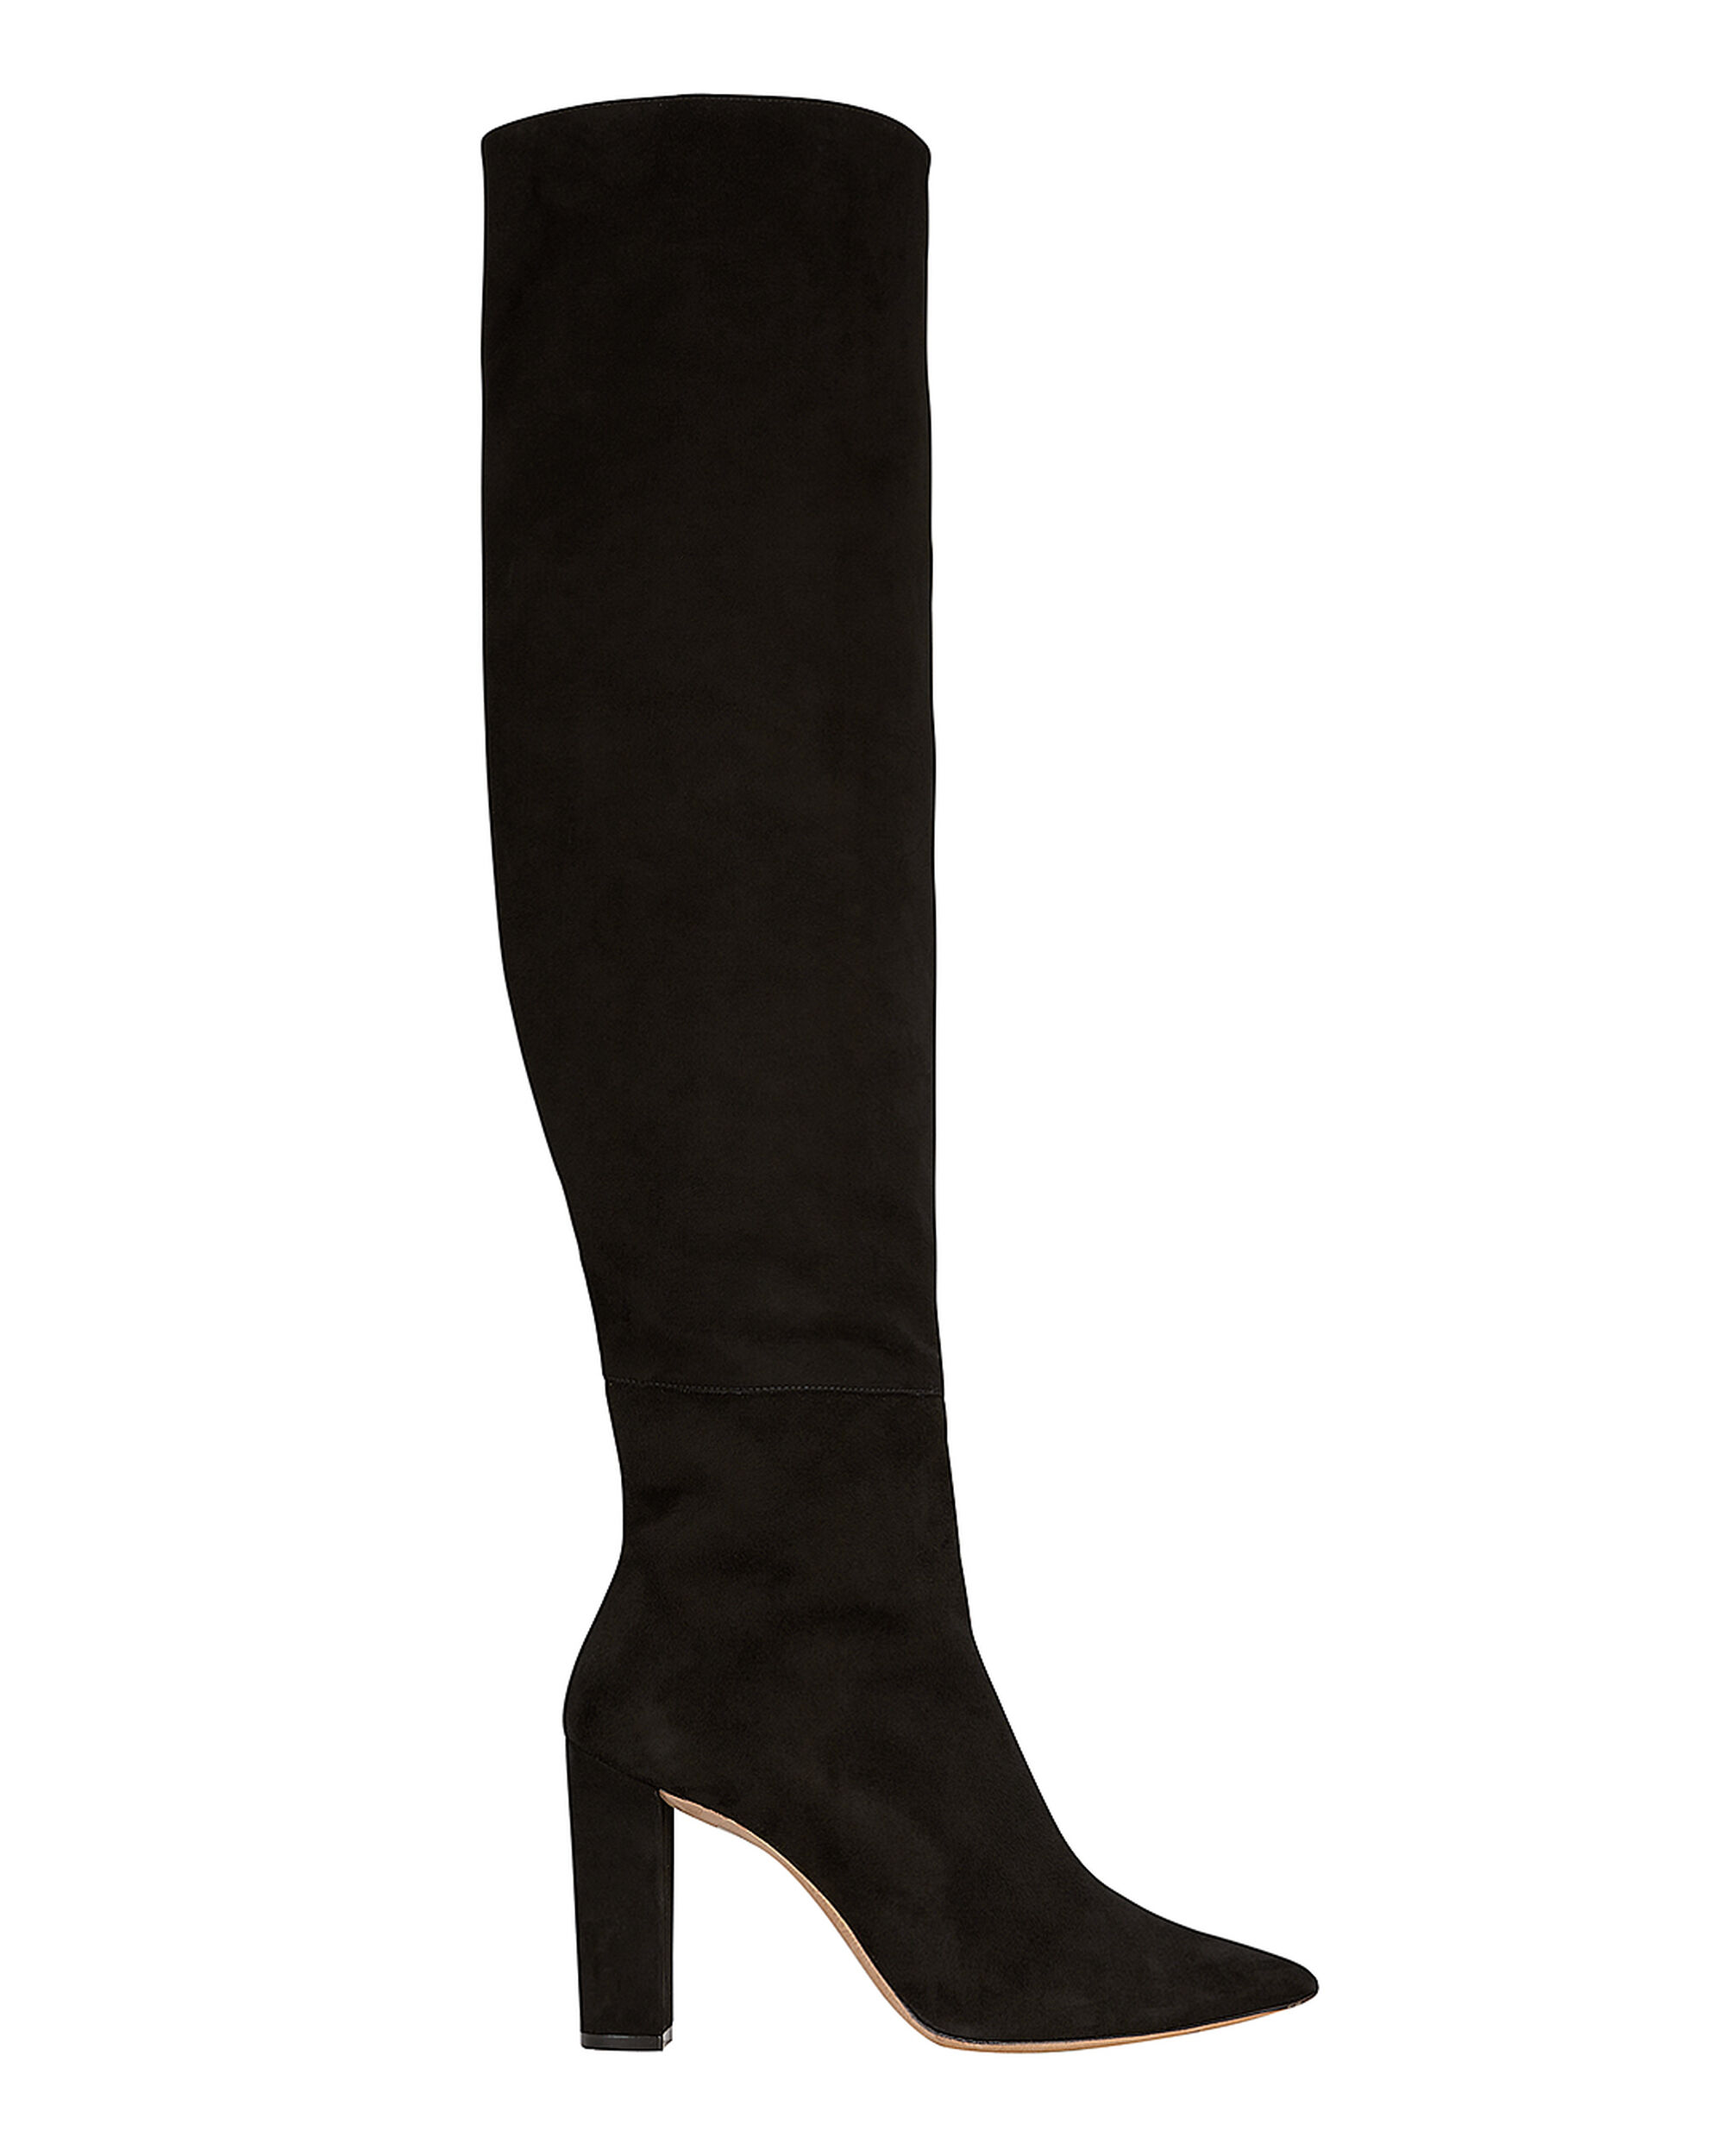 JEAN-MICHEL CAZABAT Kendal Slouchy Suede Boots